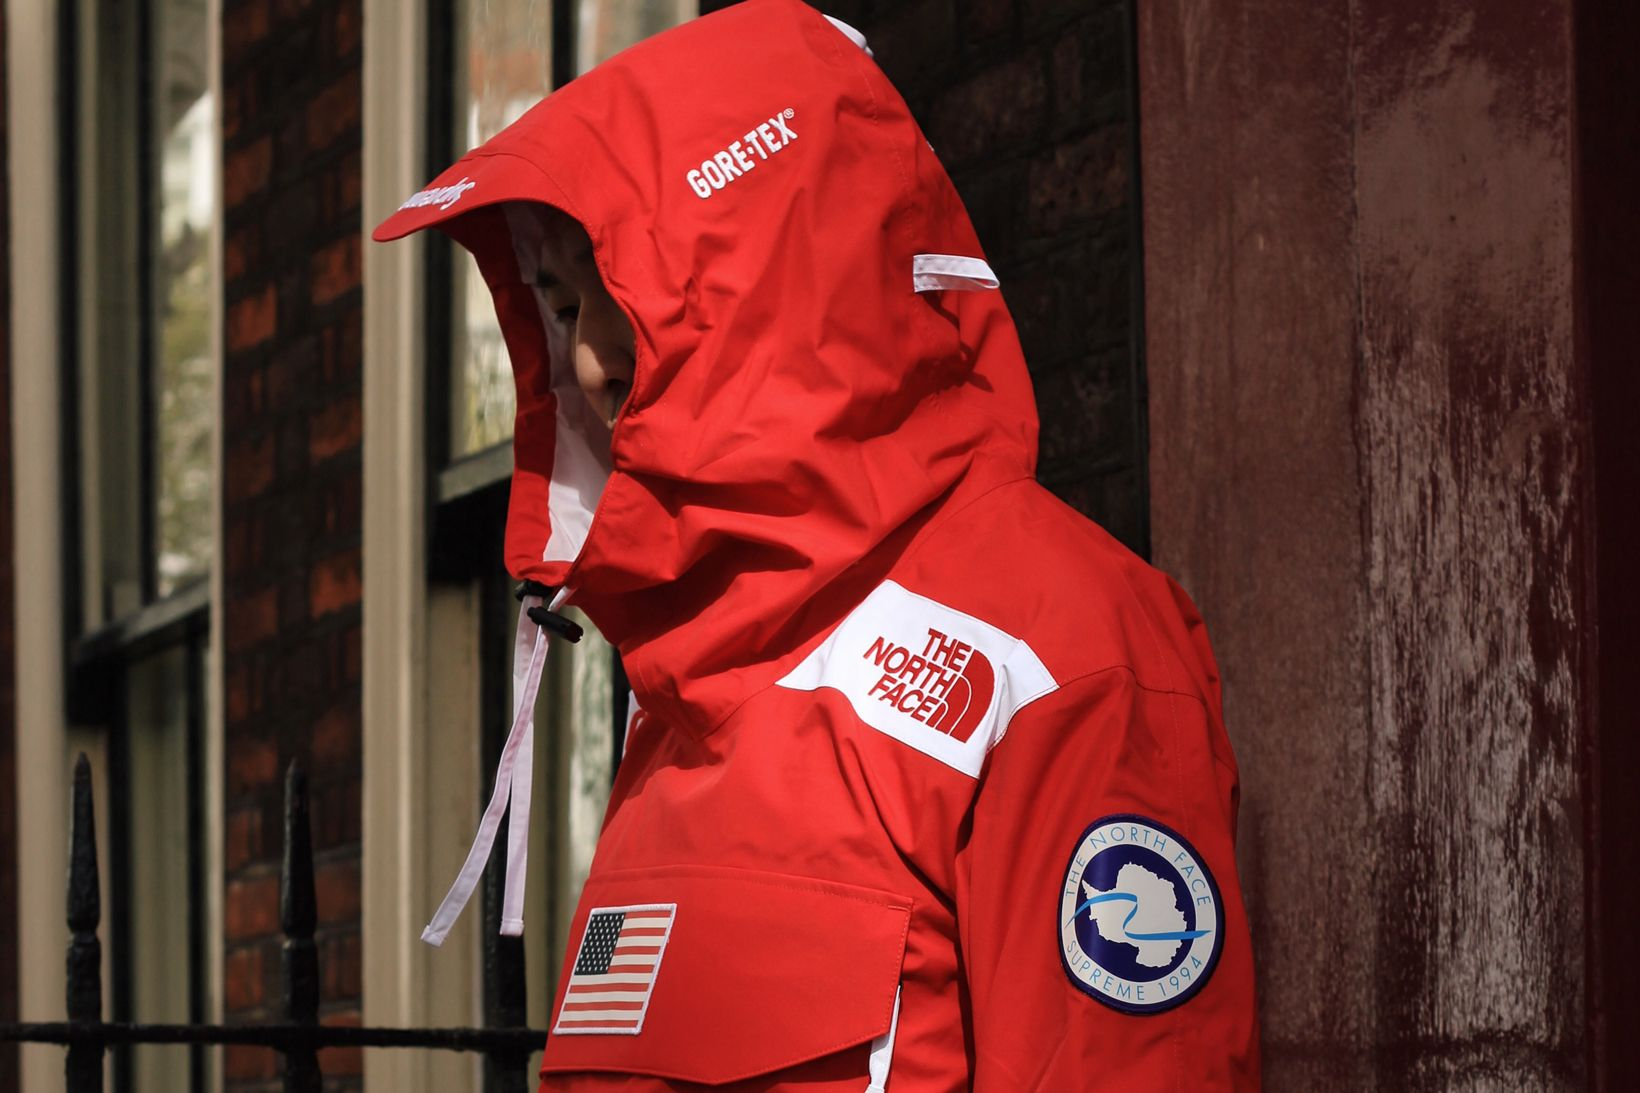 e09959df6b Highlights From the Supreme x The North Face Drop in London ...